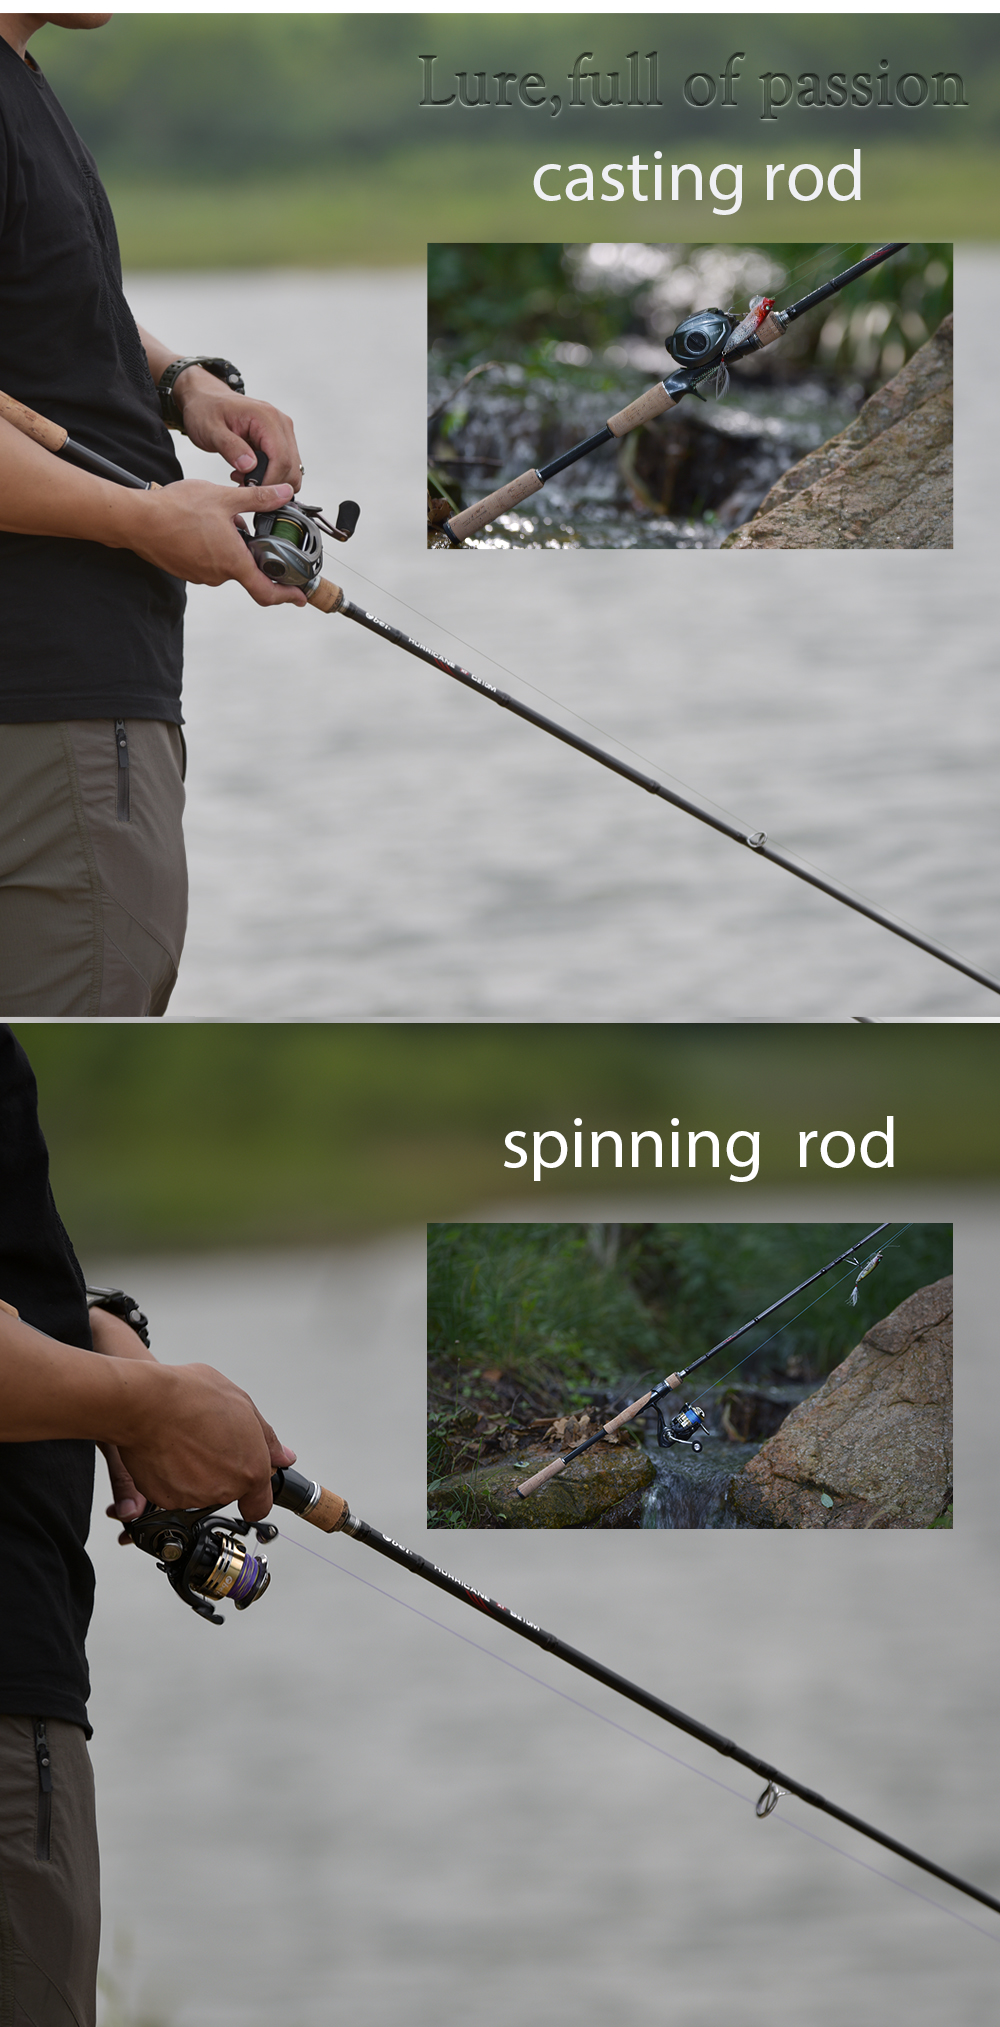 Obei HURRICANE 3 section Bait Casting Fishing Rod in Telescopic Design for Fast Casting and Clear Biting 14